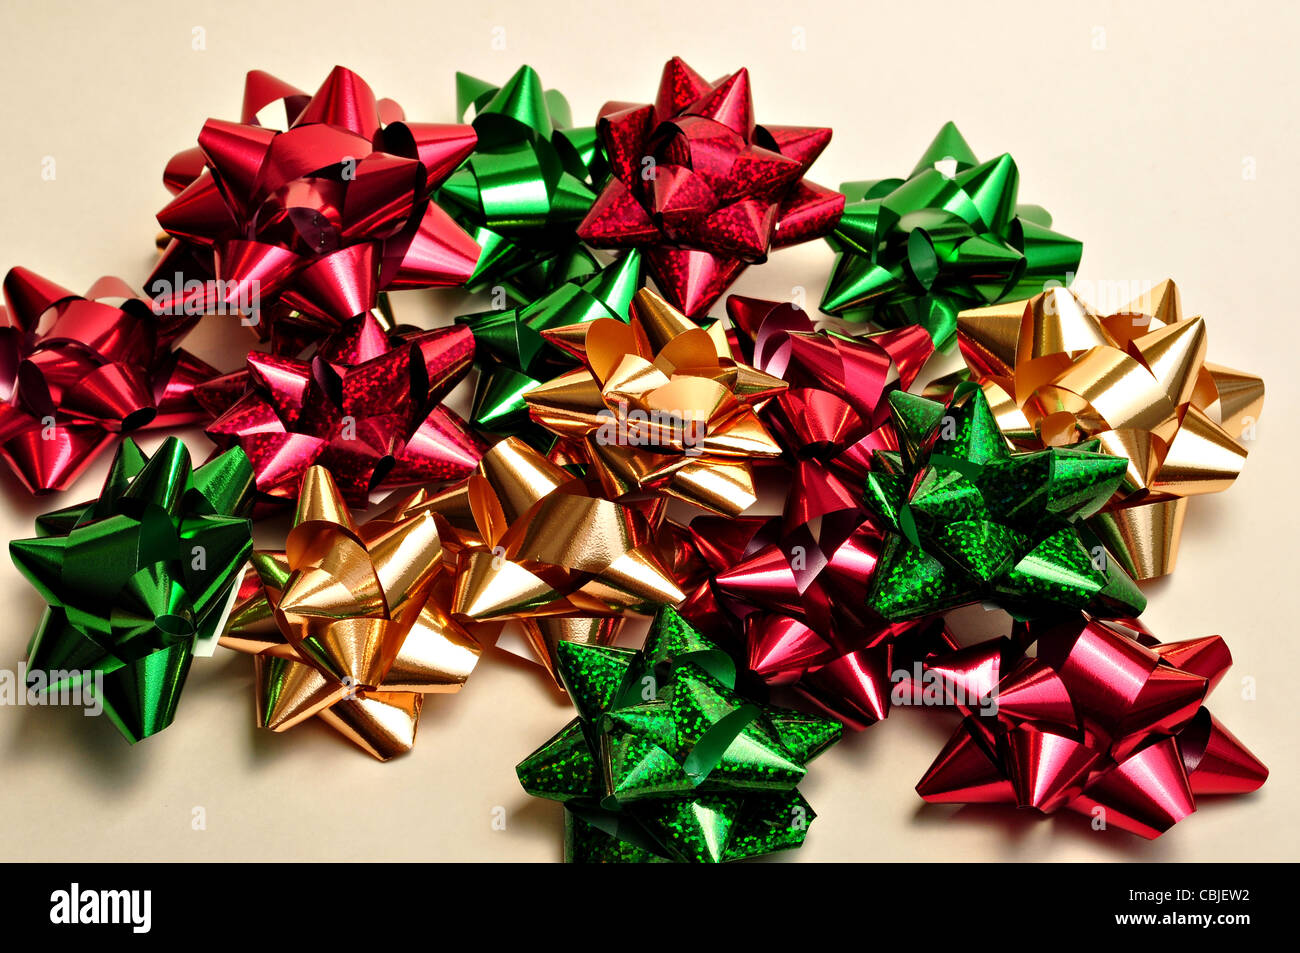 A bunch of Christmas bows lay on a white background. - Stock Image